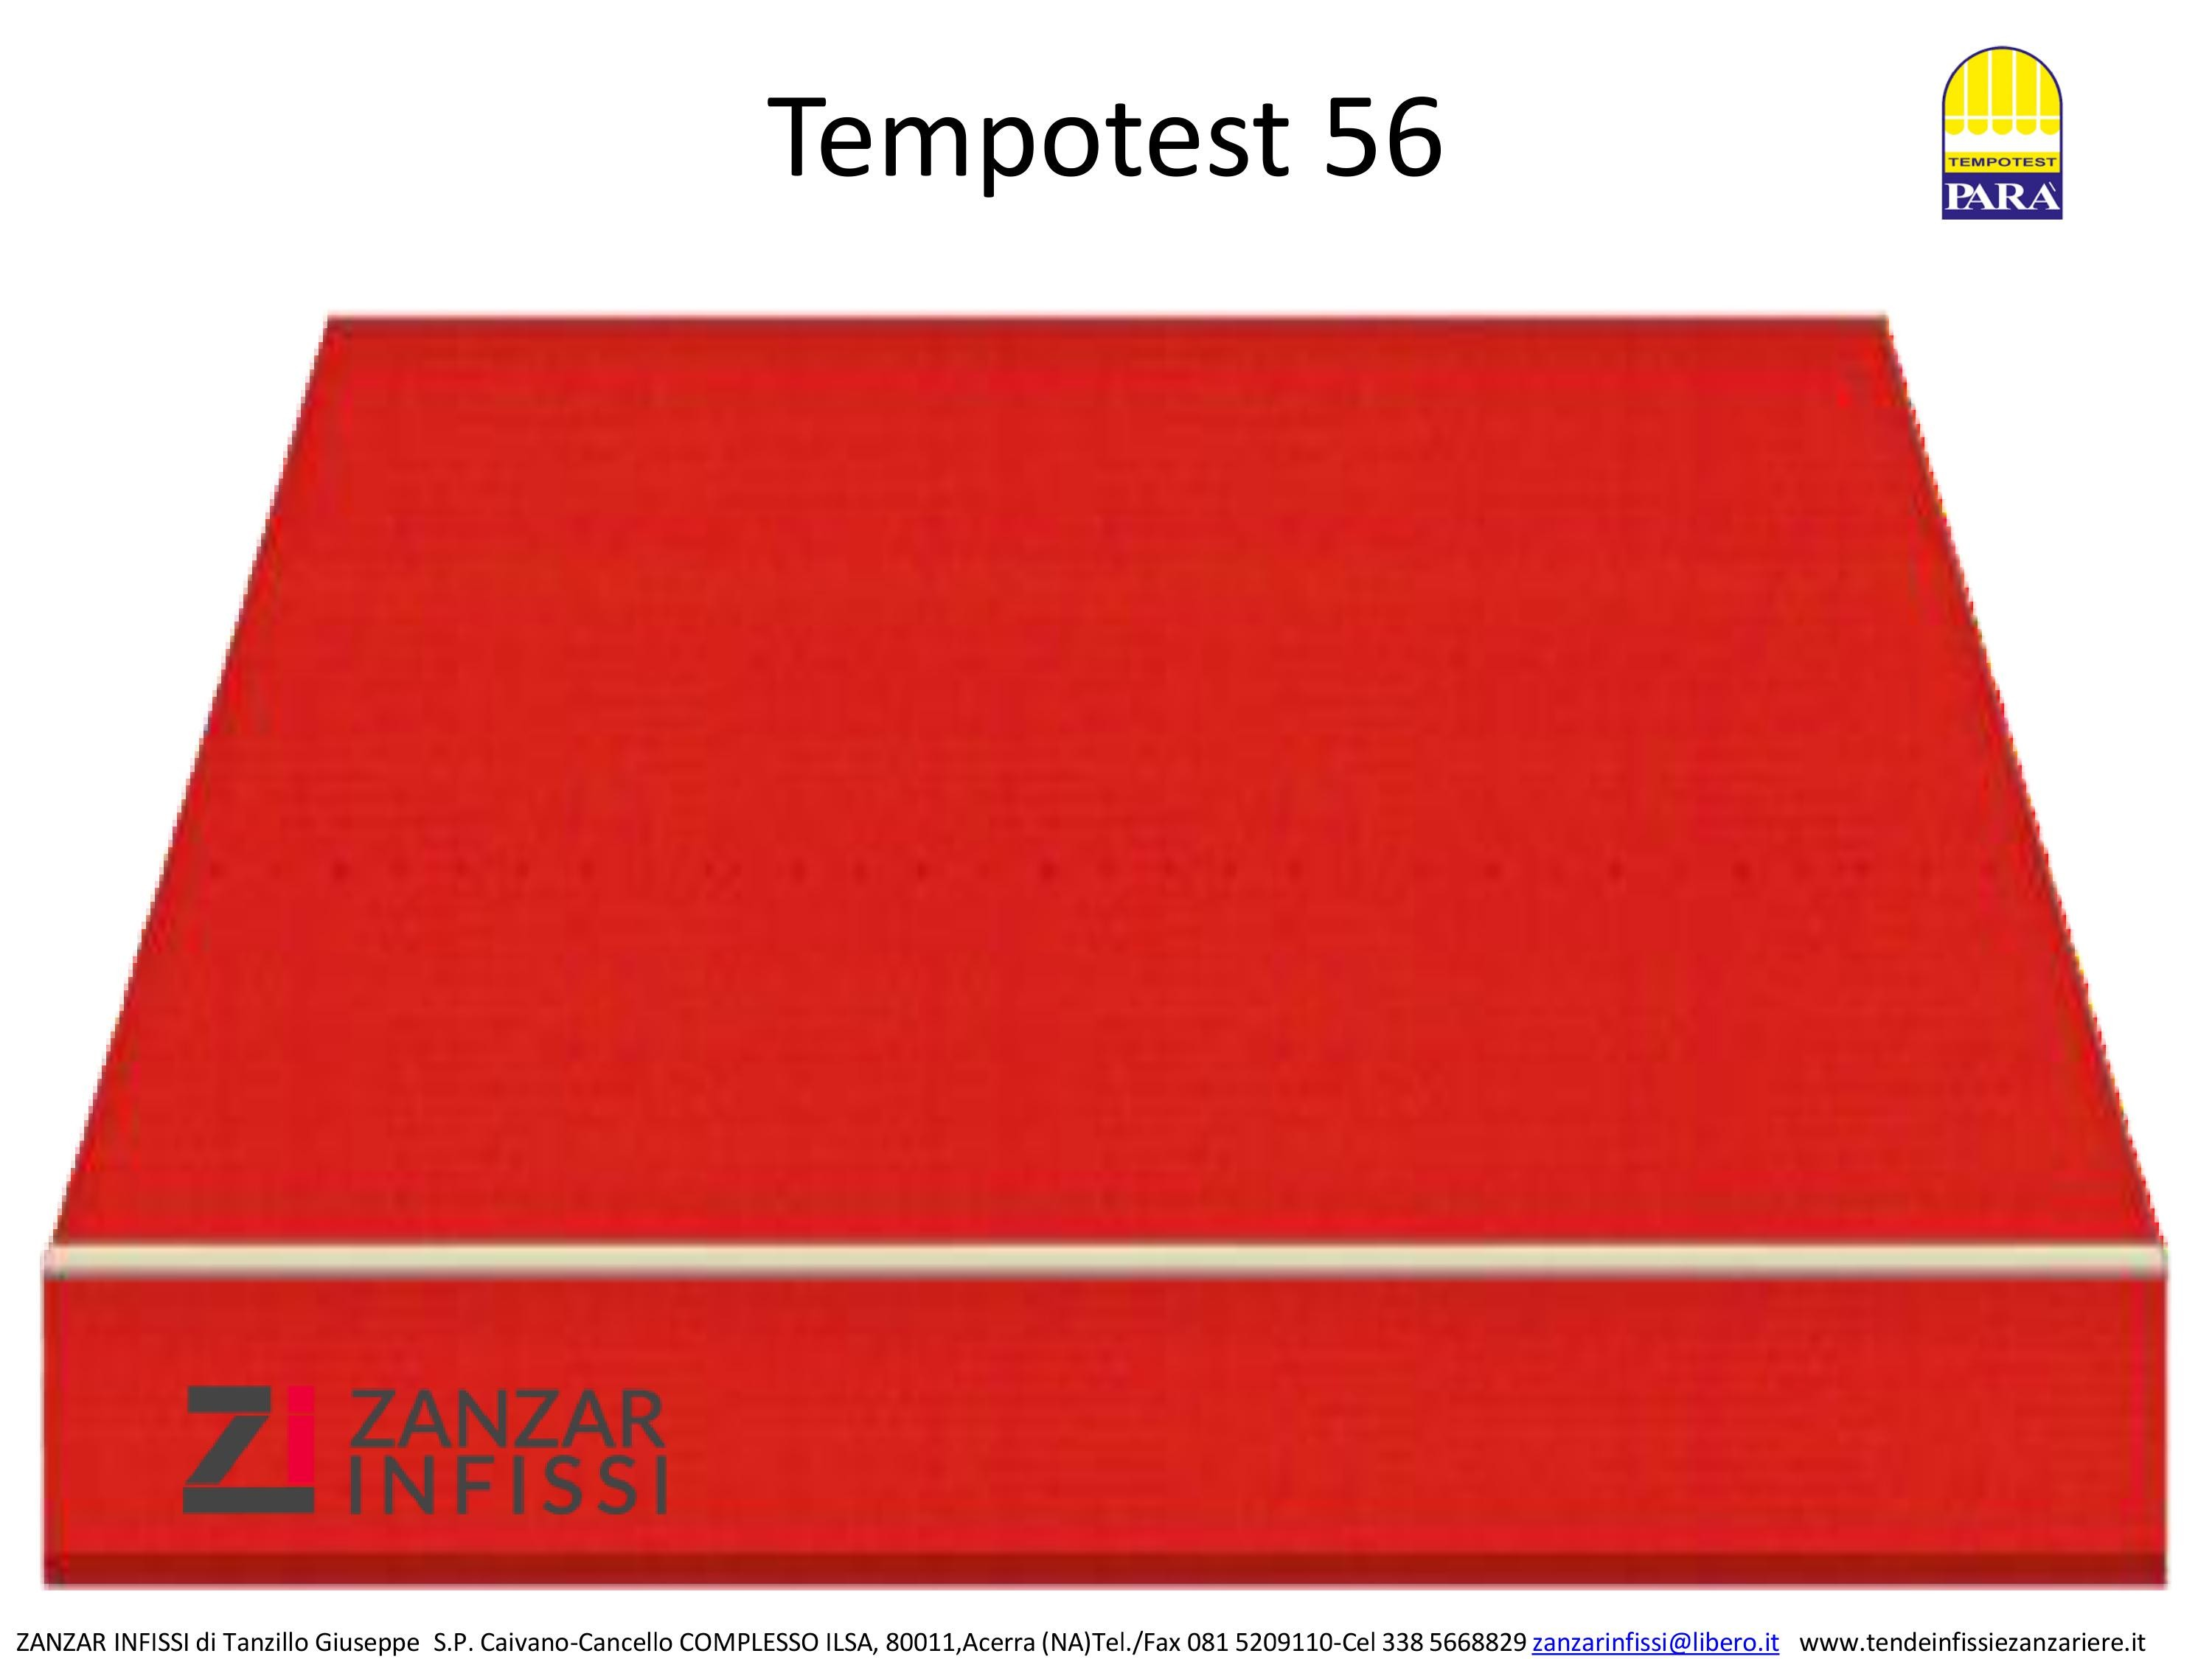 Tempotest 56